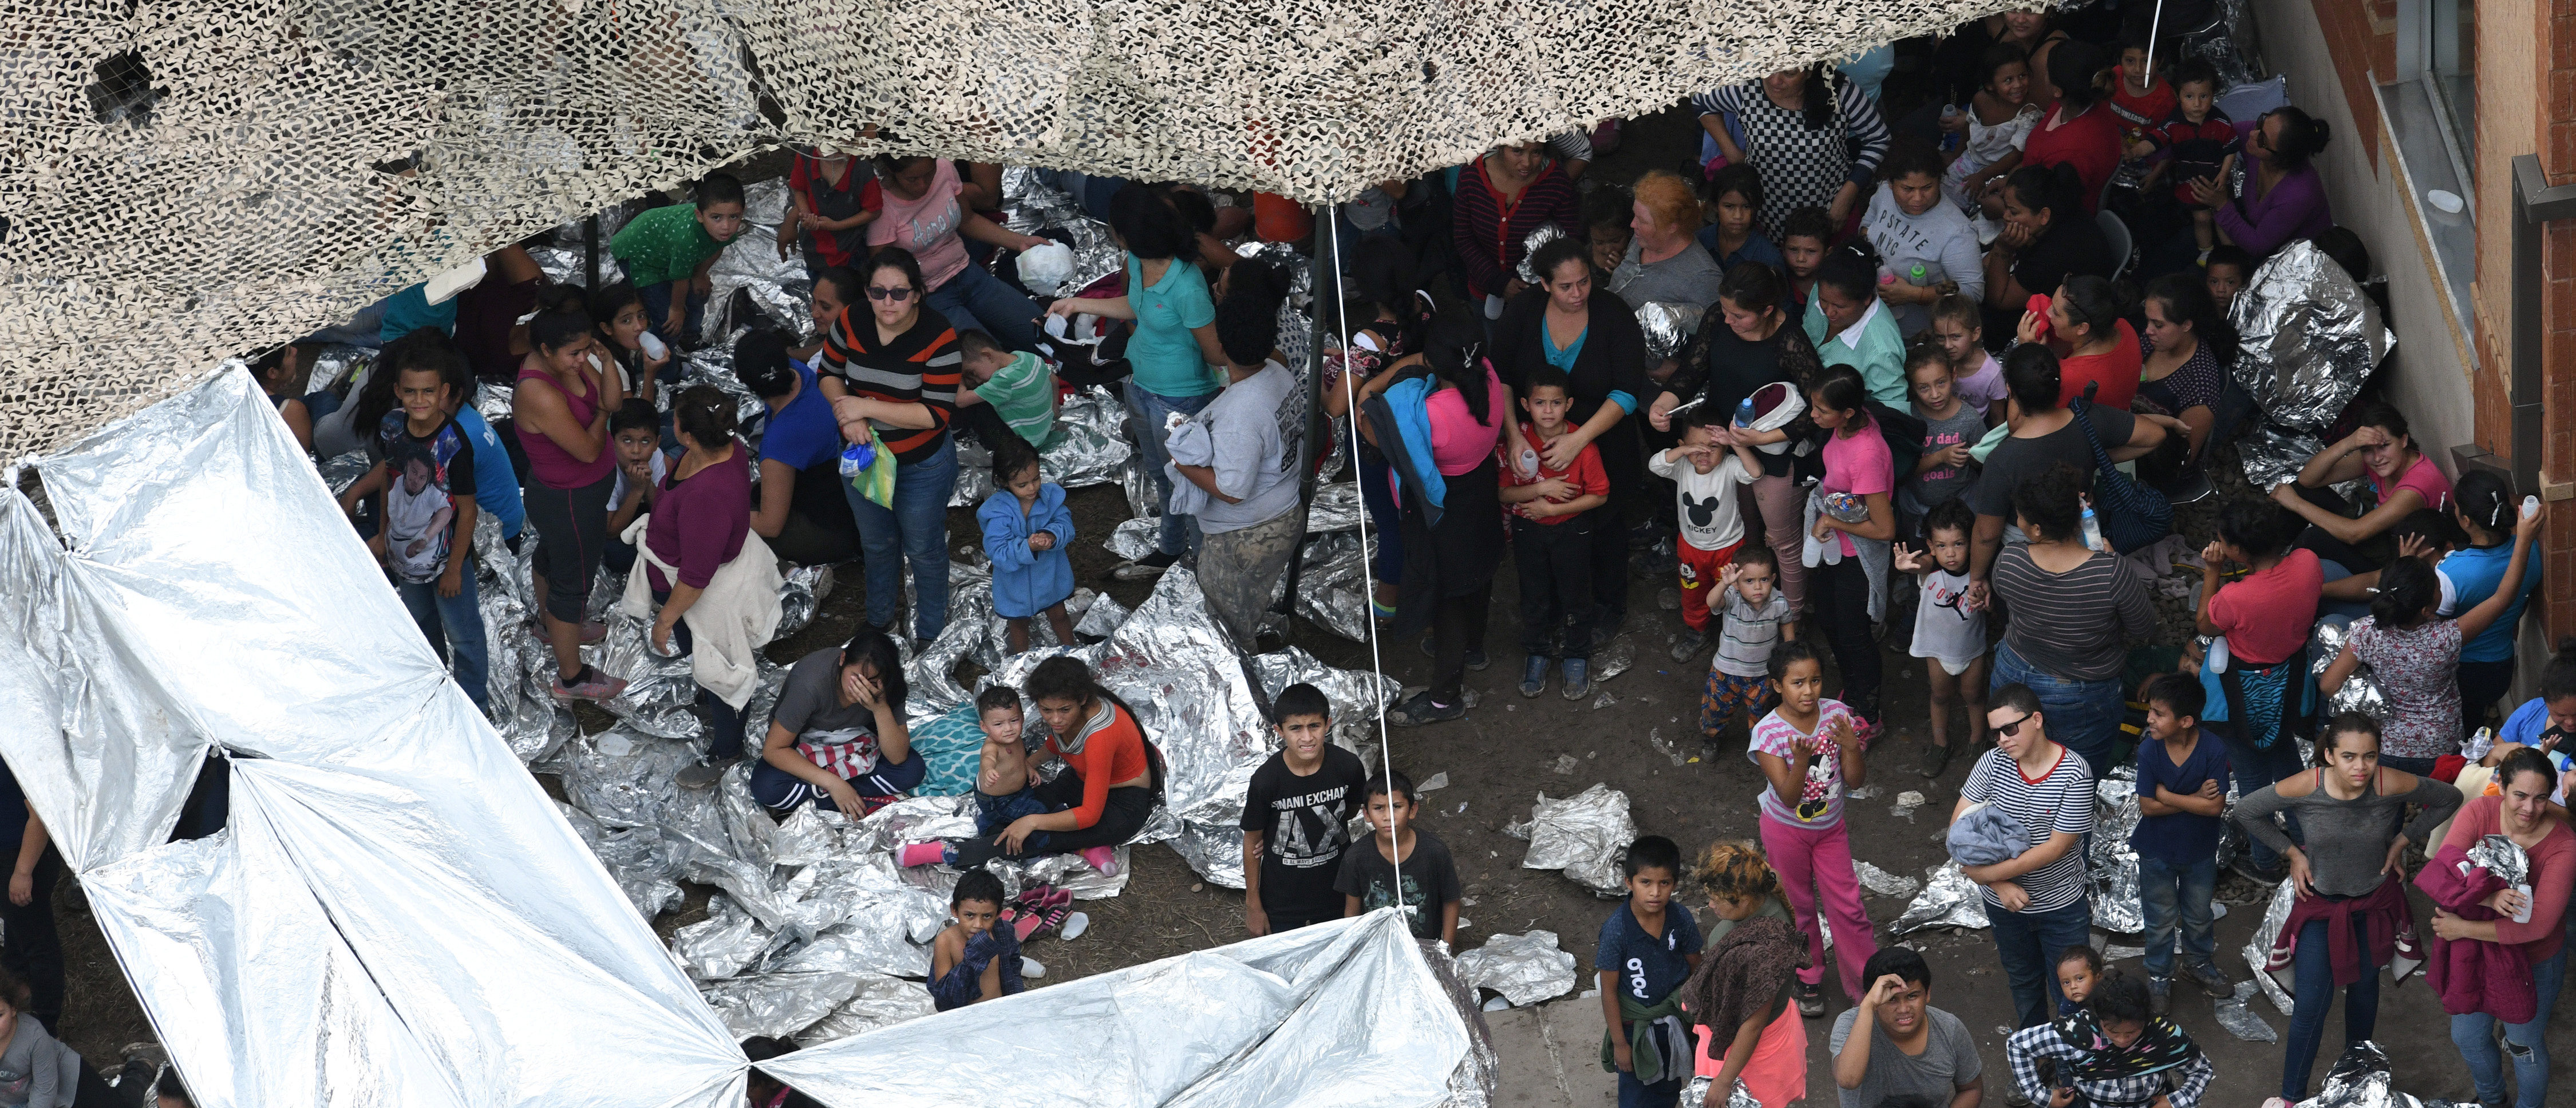 Migrants are seen outside the U.S. Border Patrol McAllen Station in a makeshift encampment in McAllen